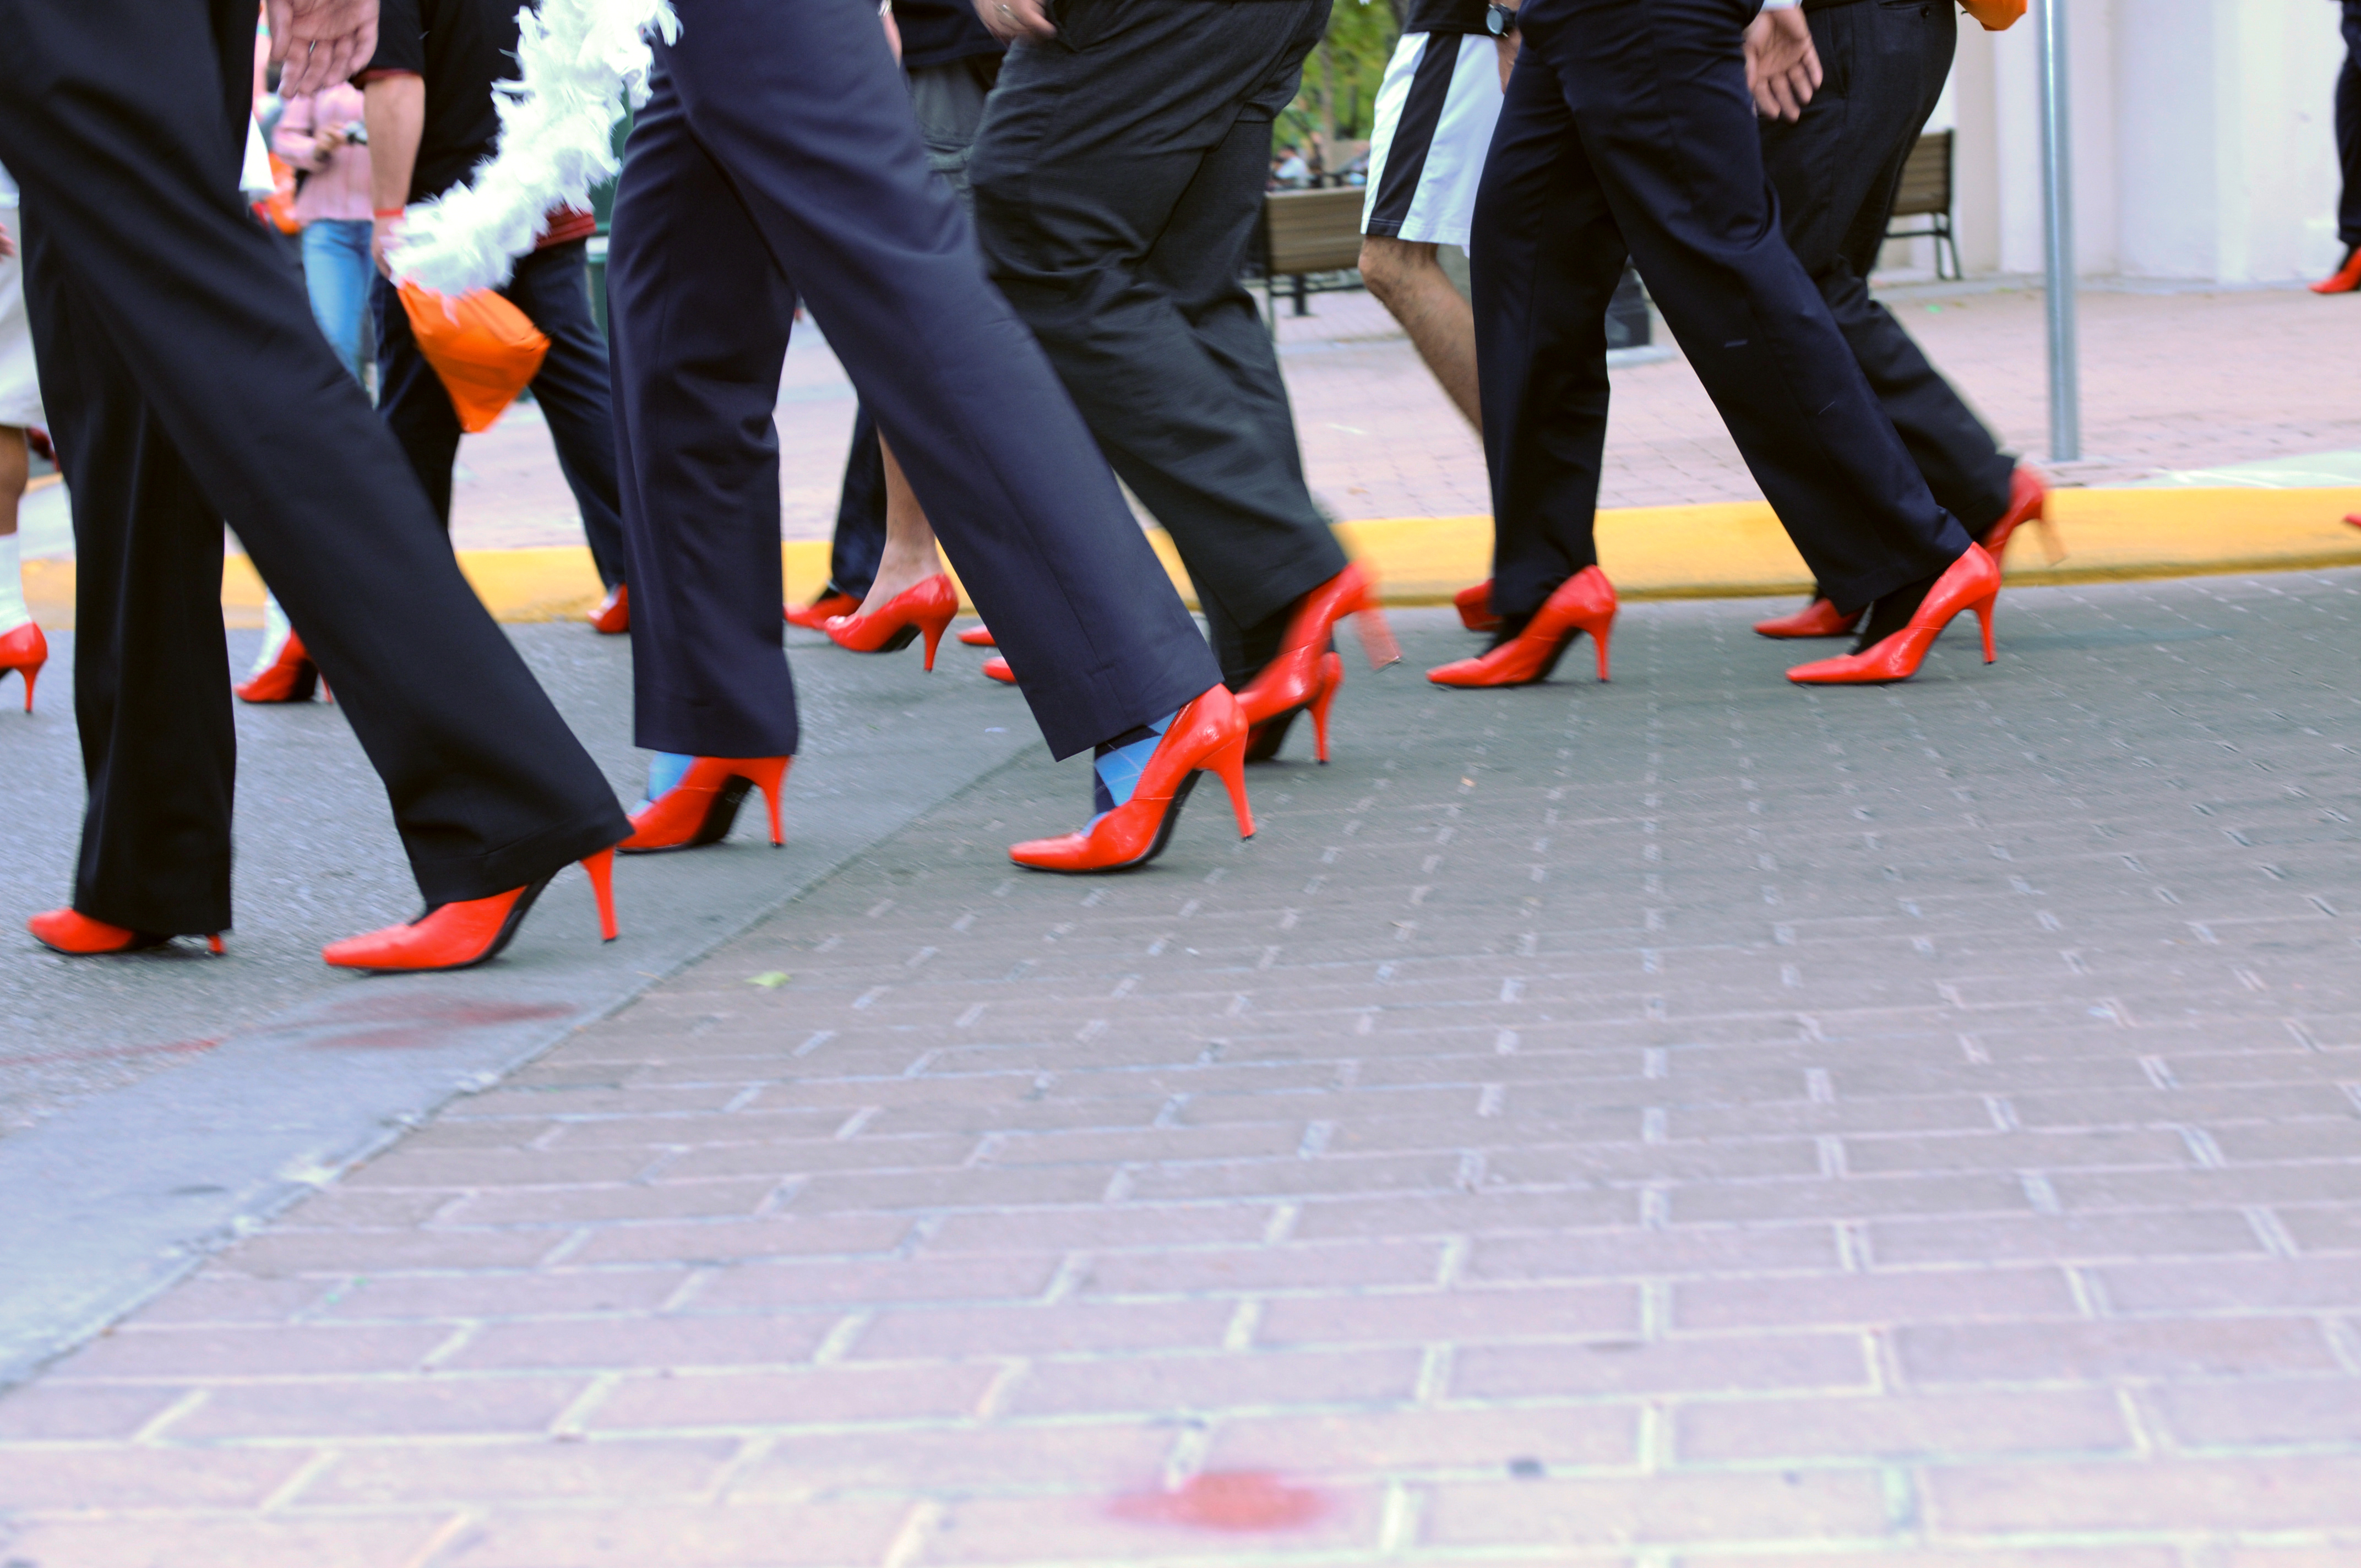 Men walk in heels for Walk a Mile in Her Shoes event to raise awareness of violence against women